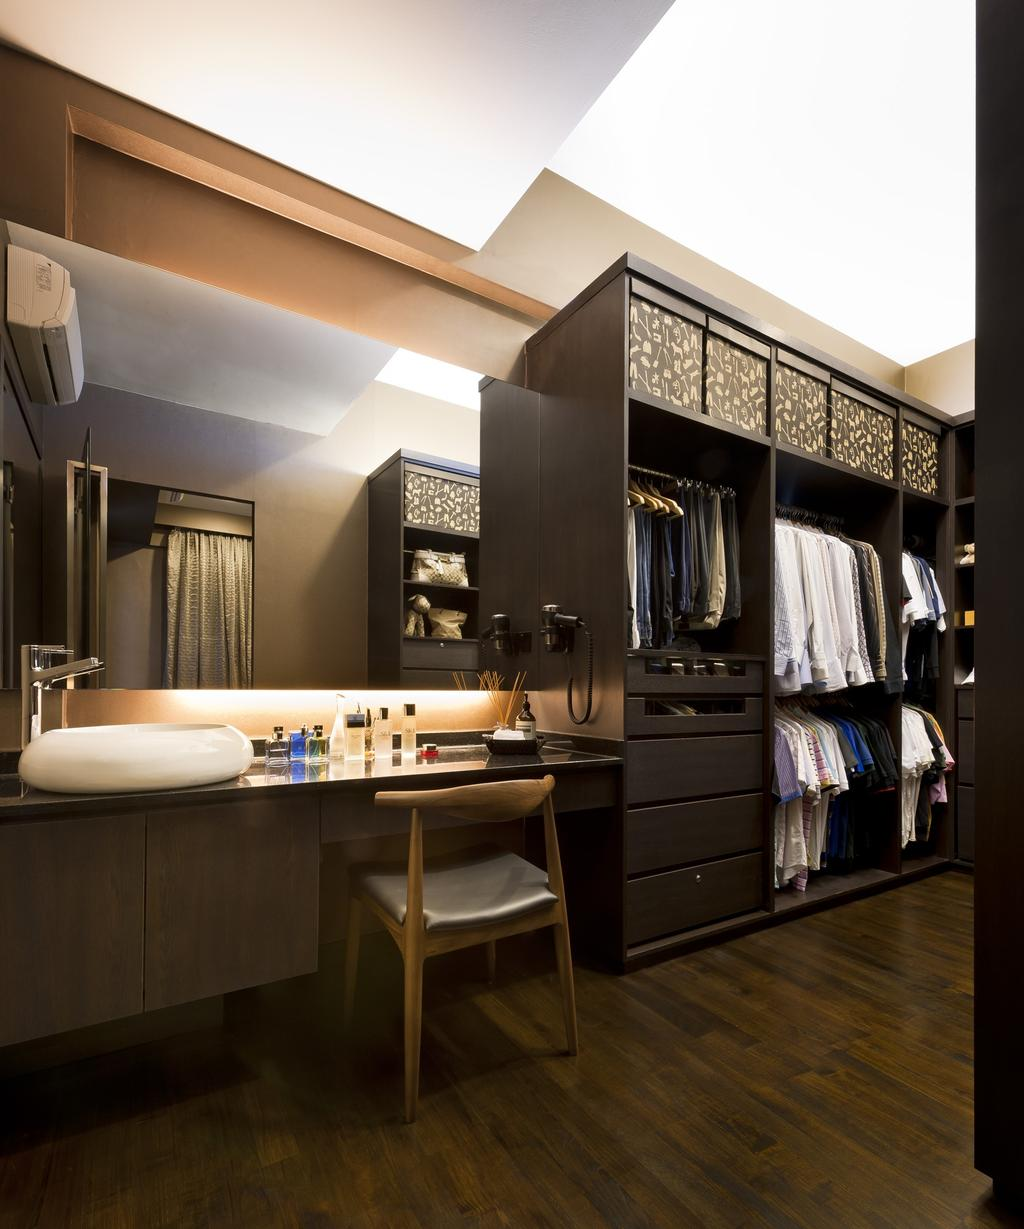 Transitional, Landed, Bathroom, Chuan Hoe Avenue, Interior Designer, Space Vision Design, Chair, Vessel Sink, Mirror, Walk In Wardrobe, Concealed Lighting, Parquet, Woodwork, Wood Laminate, Wood, Laminate, Rack, Drawers, Storage, Bathrooom Counter, Closet, Furniture, Wardrobe, Indoors, Interior Design, Room